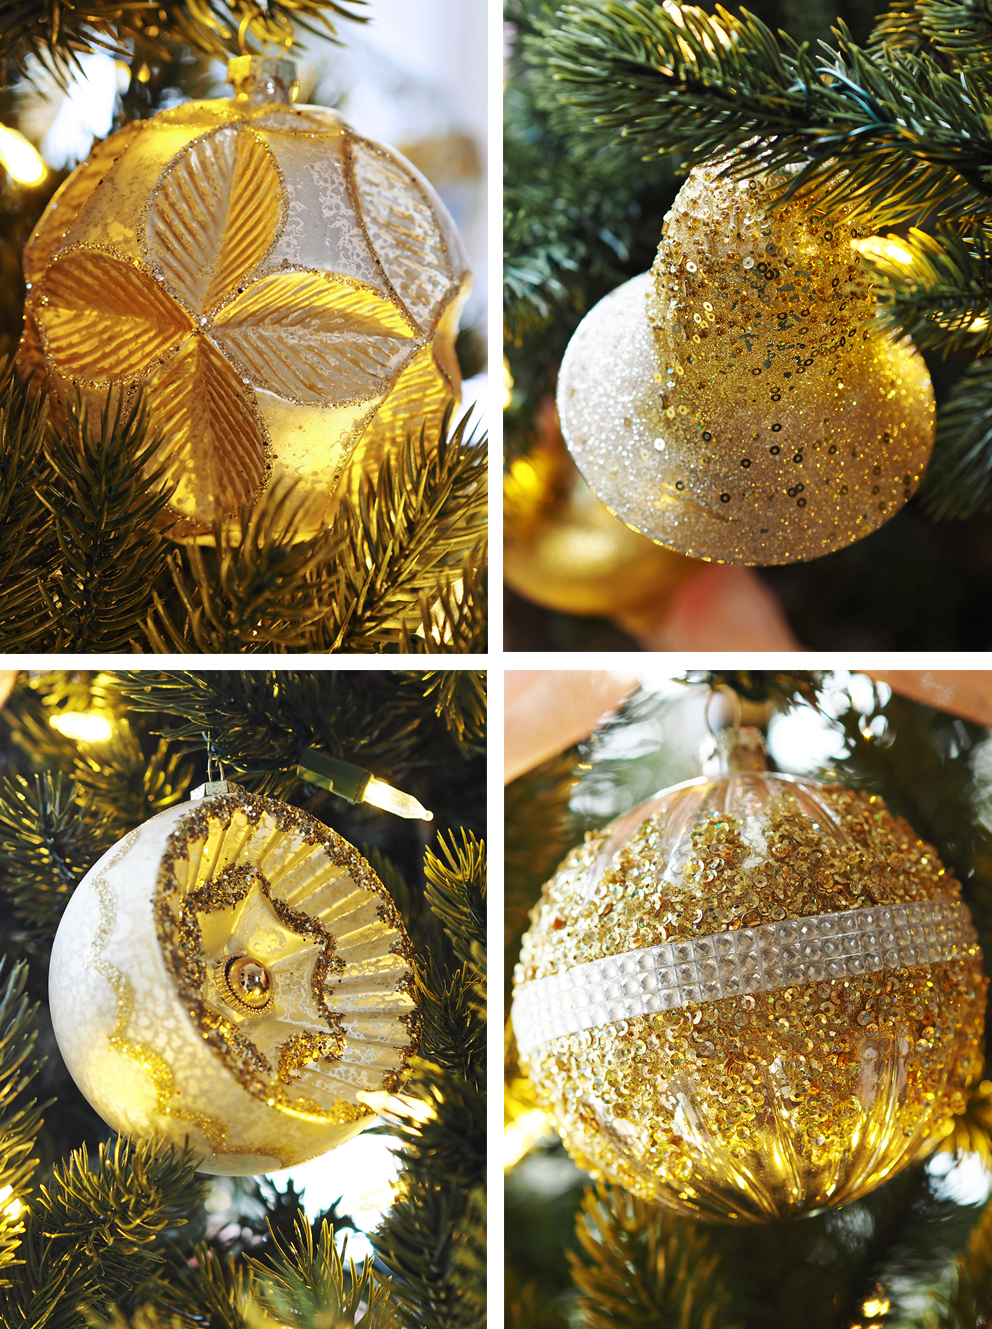 French For Pineapple Blog - Trees & Baubles Balsam Hill Christmas Blog Hop - montage of gold glitter tree bauble decorations on faux tree